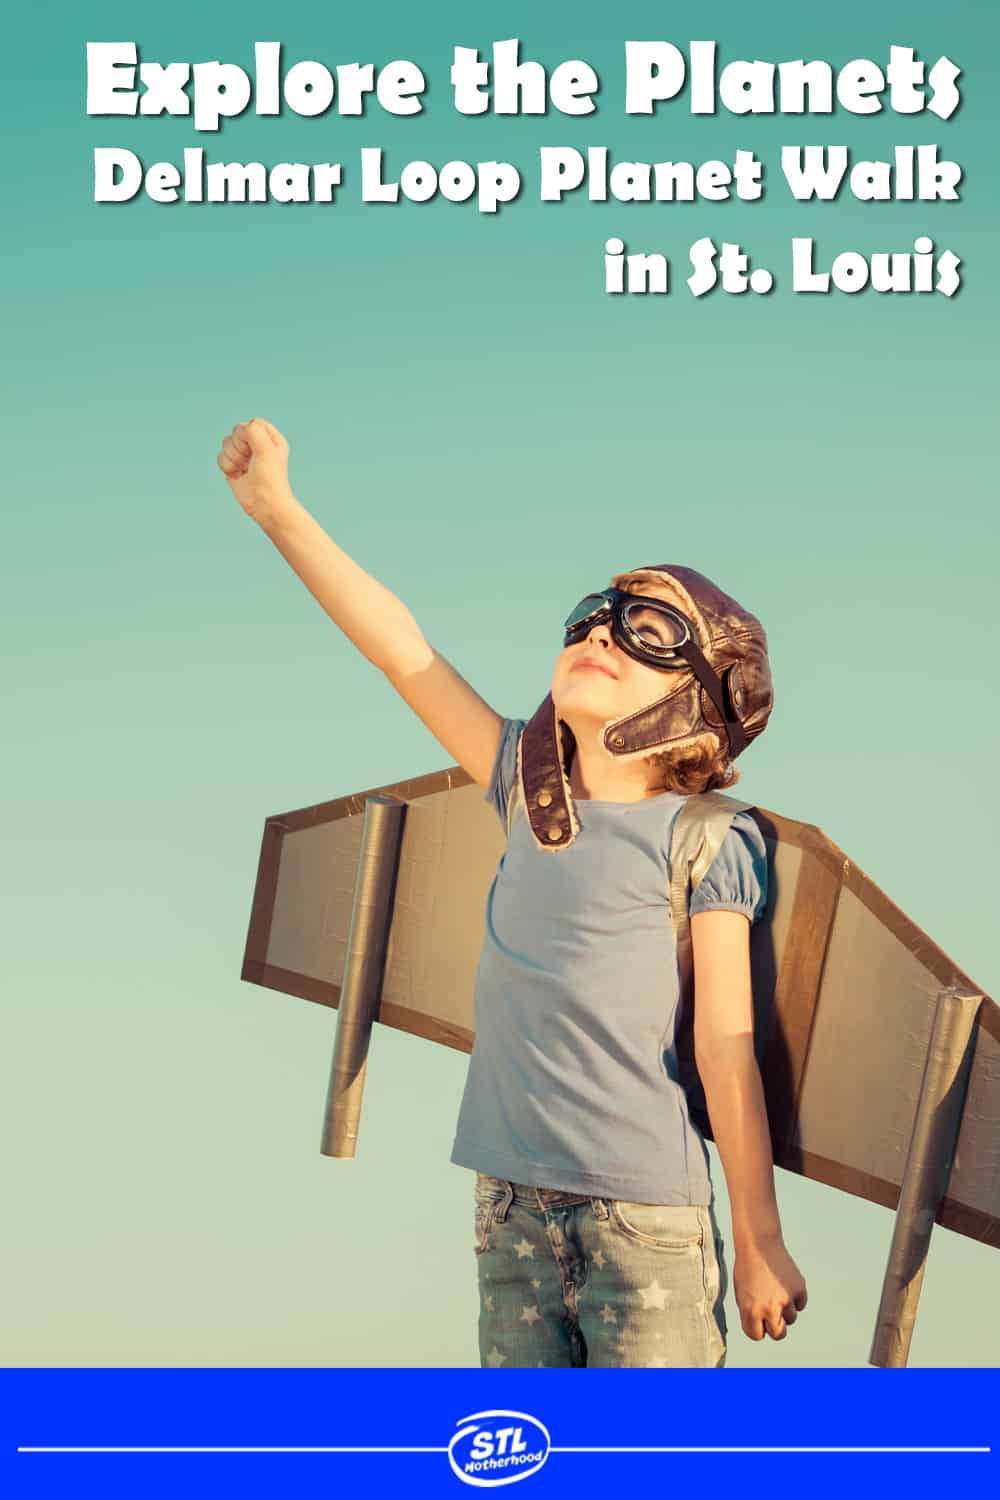 Explore the Planets with your kids while strolling the Delmar Loop in St. Louis -- one of the best streets in America! 1/2 mile walk with lots of food and ice cream shops along the way. #STEM #stlouis #family